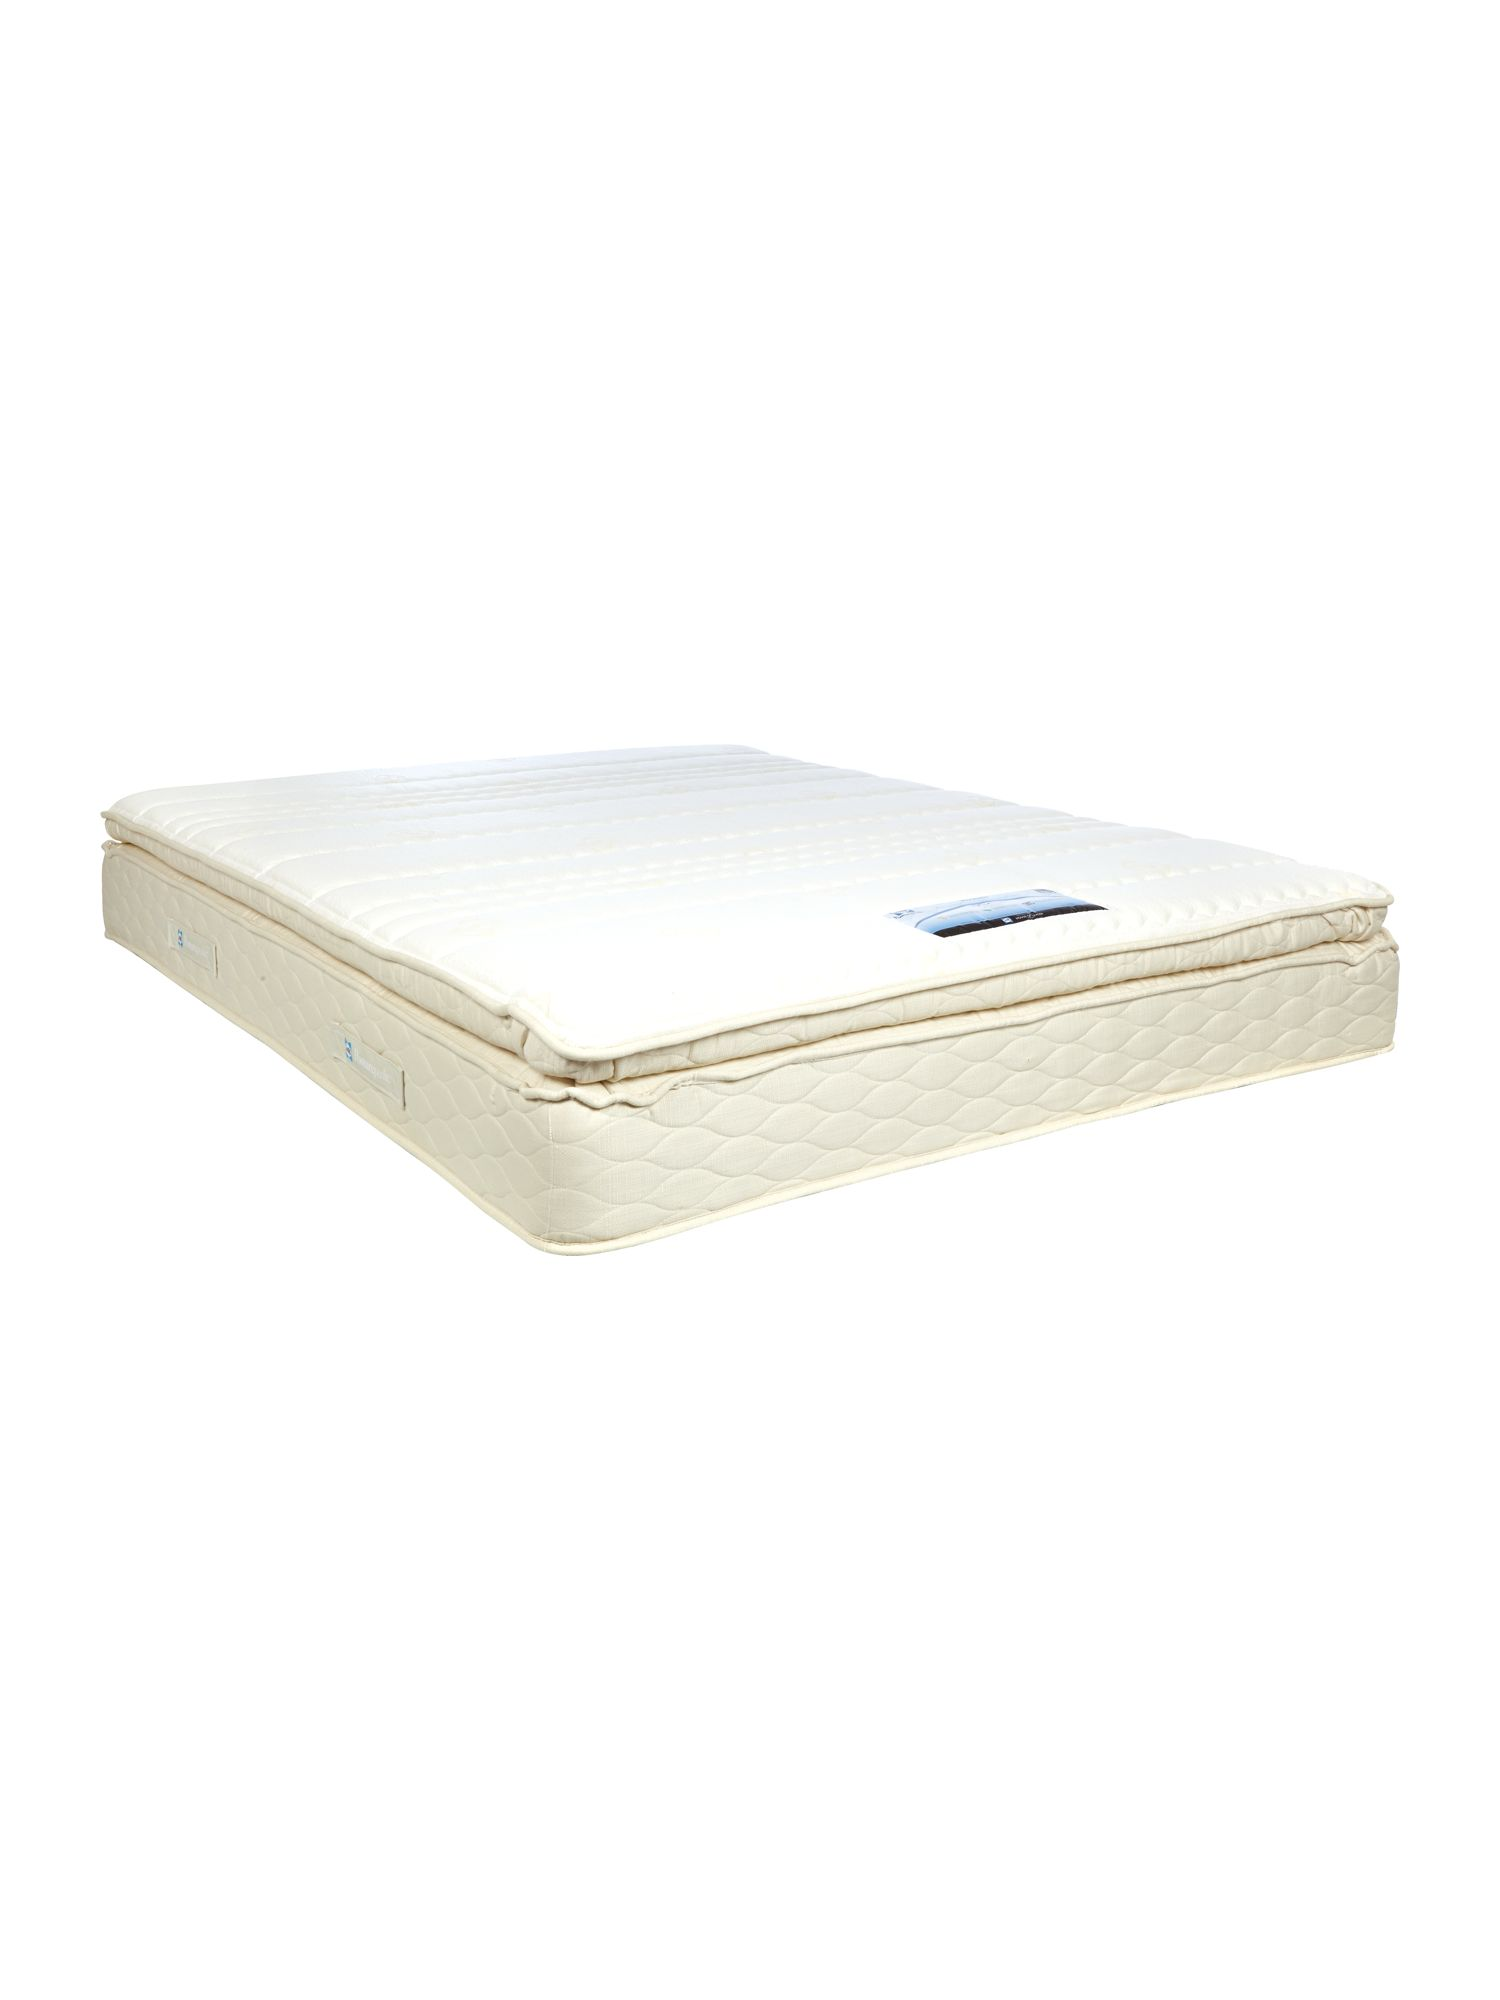 Rhodes mattress range